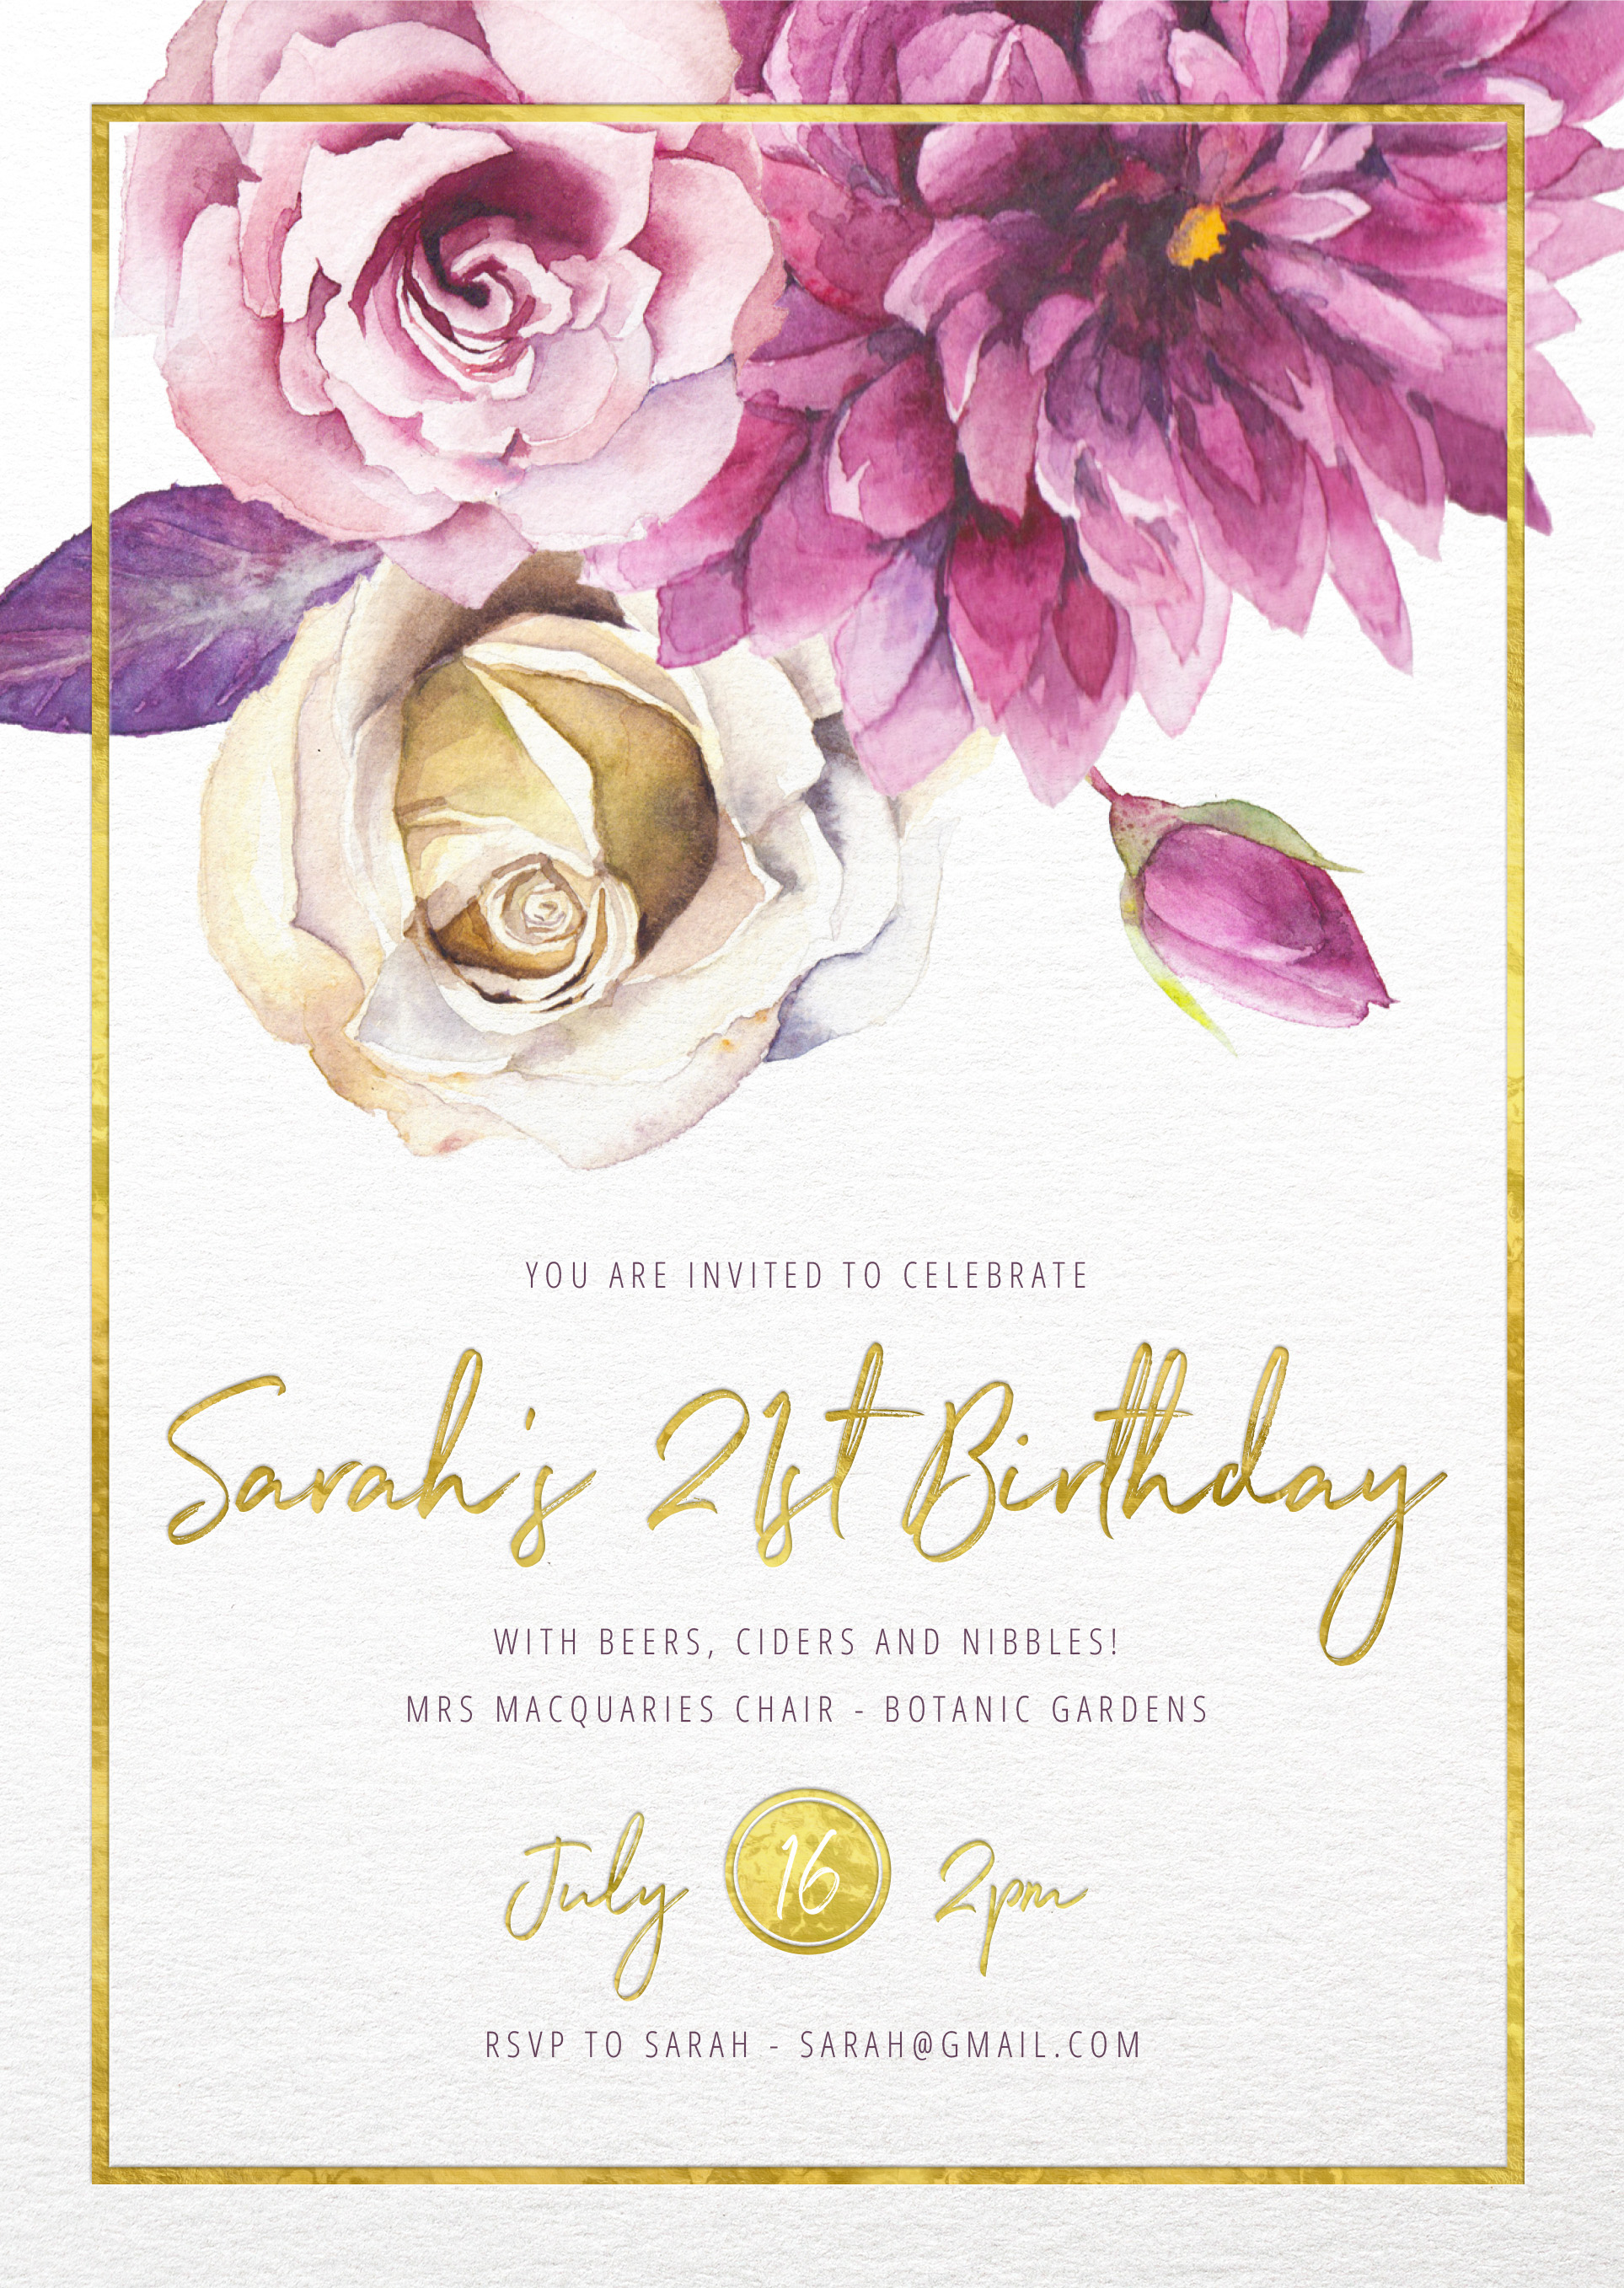 Birthday Party Invitations - Independent Designs - Printed By Paperlust